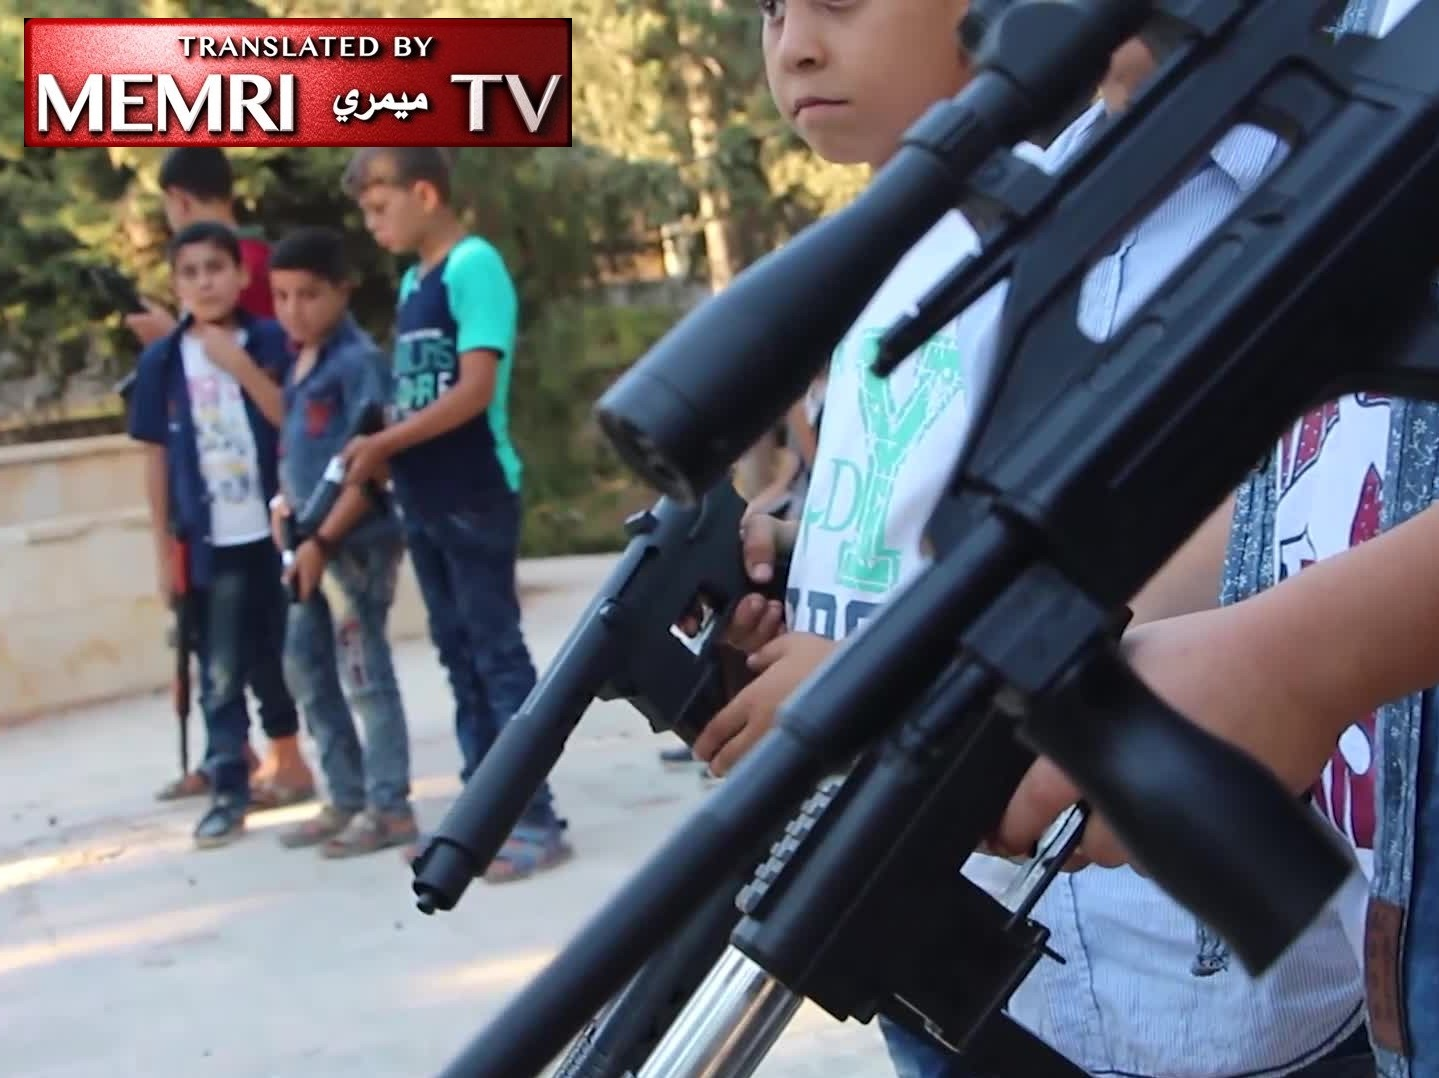 Syrian Children Play War Games with Toy Guns and Rifles: When We Grow Up, We Want to Be Mujahideen